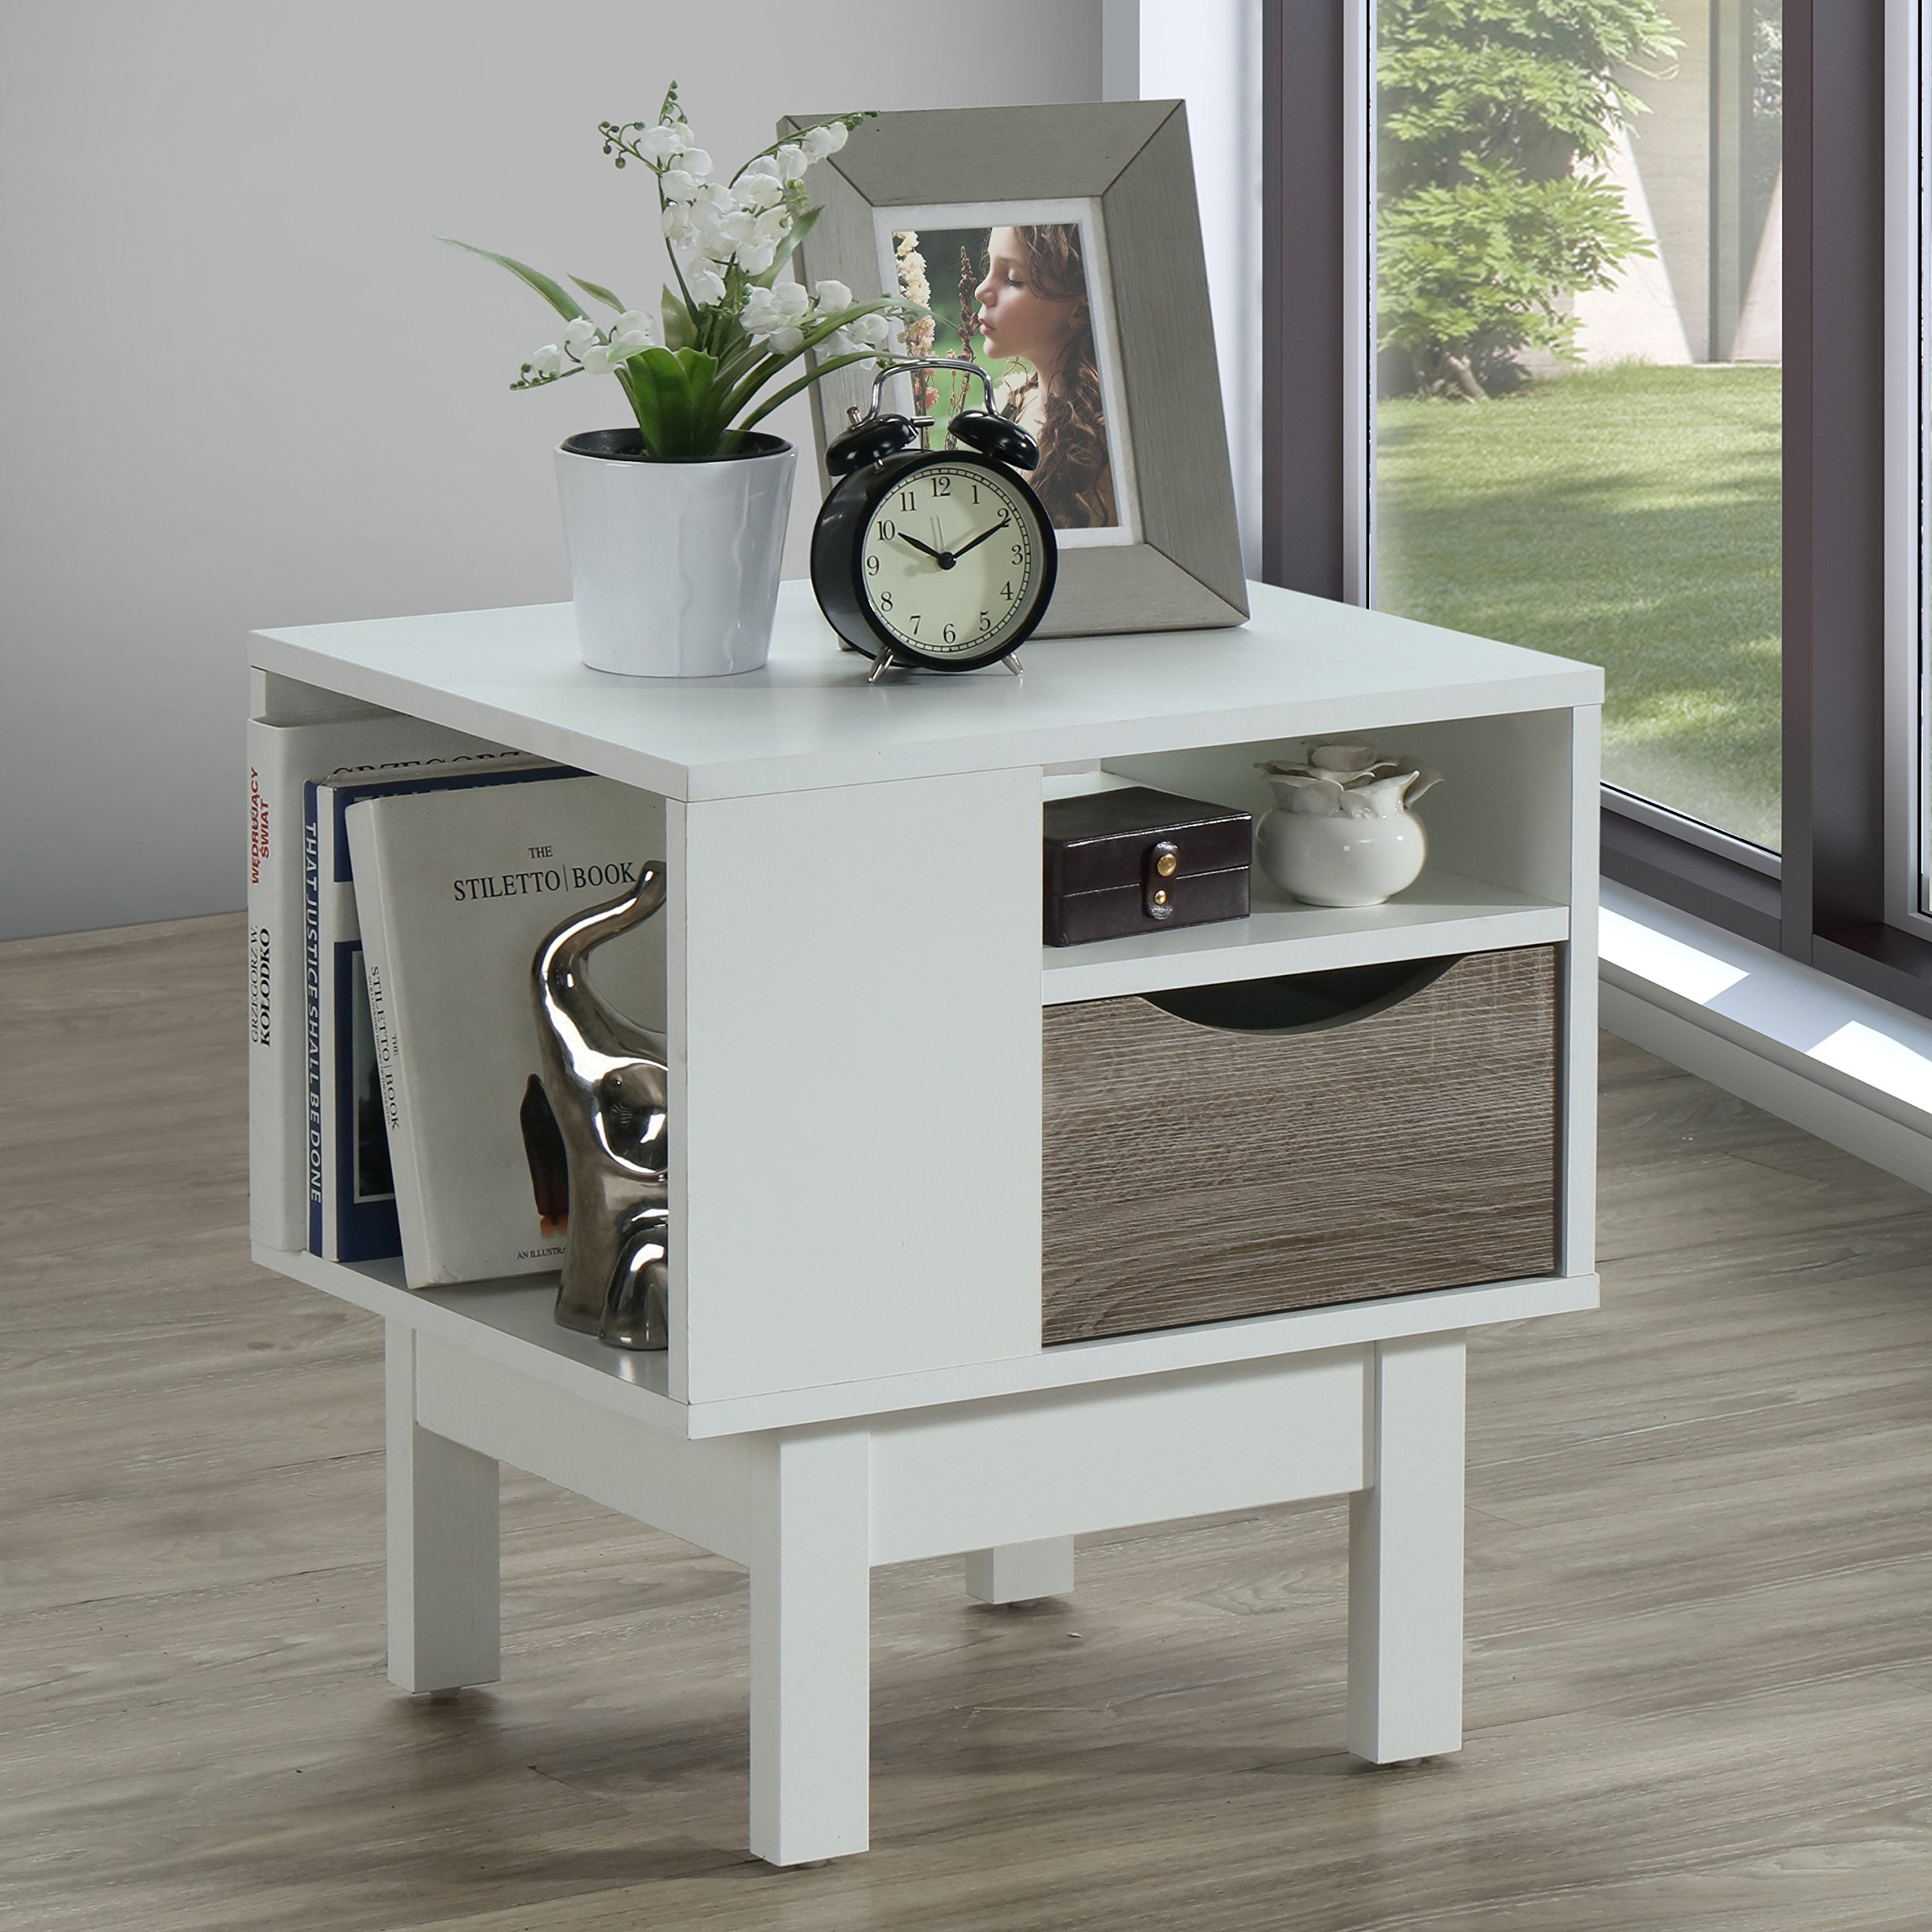 White rustic end table shelf nightstand side narrow living - Narrow side tables for living room ...